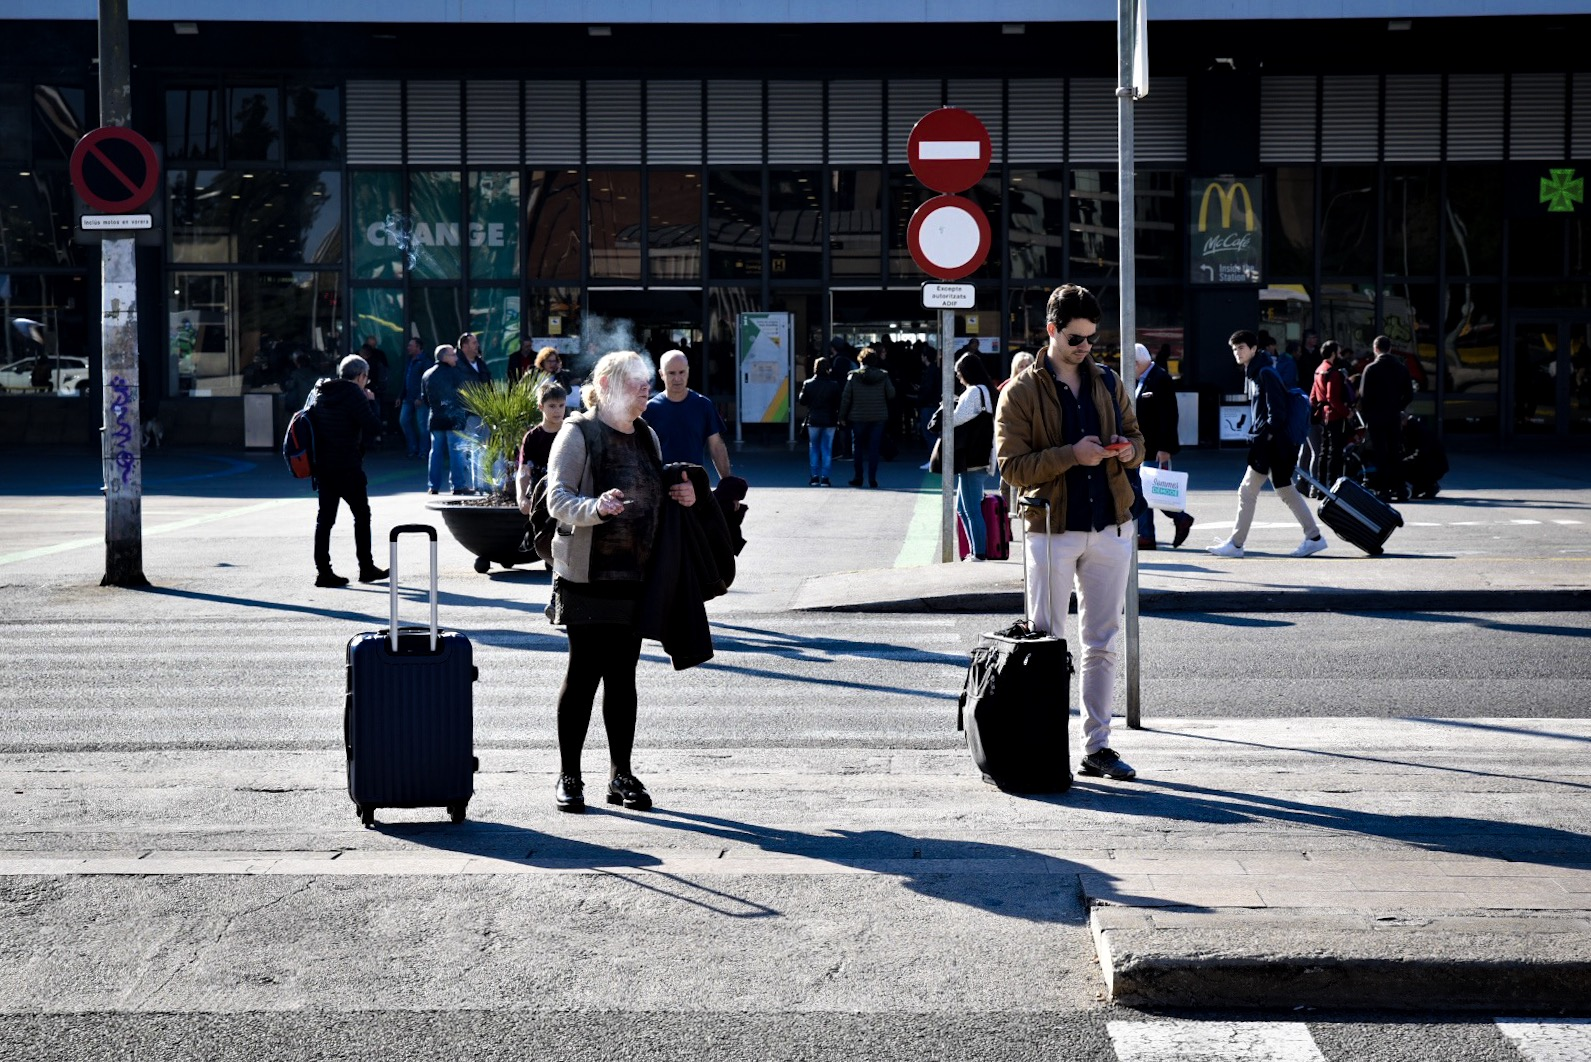 Barcelona Street Photography Project at Sants Estacio Train Station by Ben Holbrook